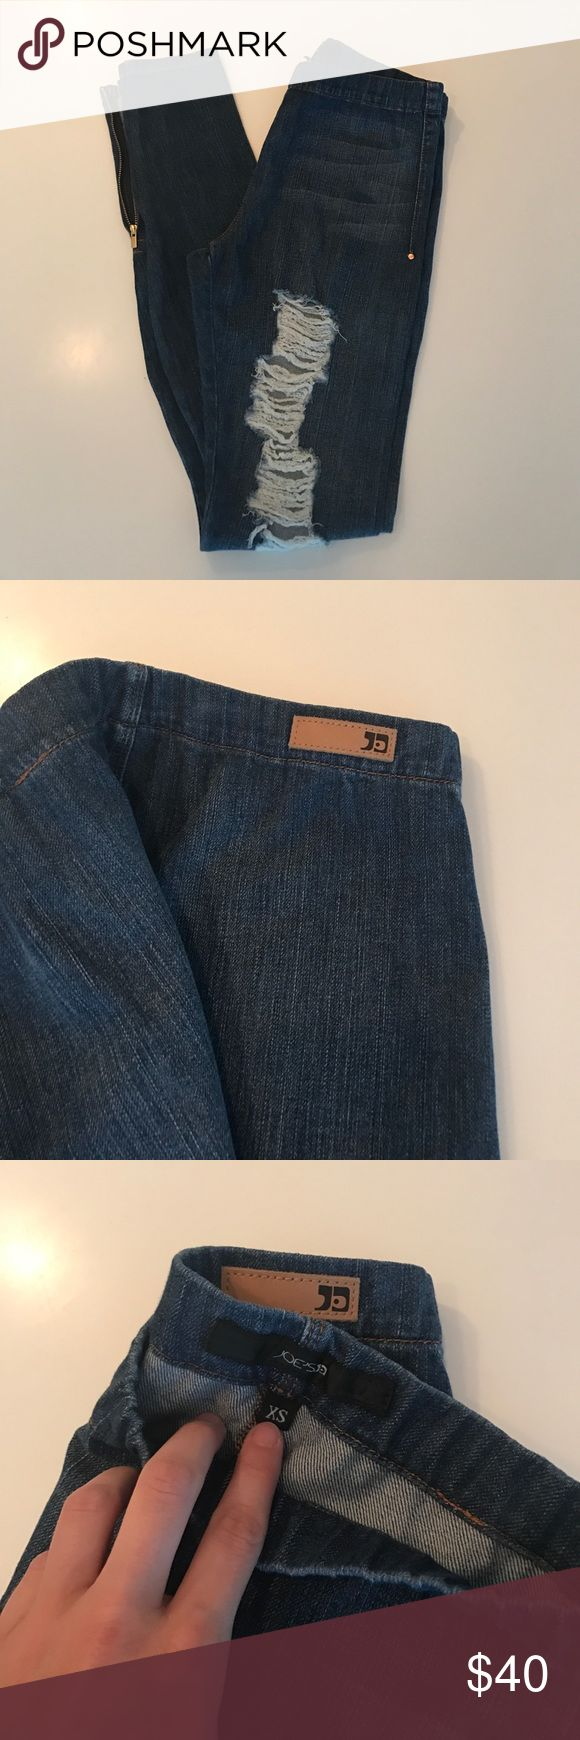 NWOT Joe's Jeggings size XS Ripped jeggings, never been worn, zippers on the ankles, elastic band Joe's Jeans Pants